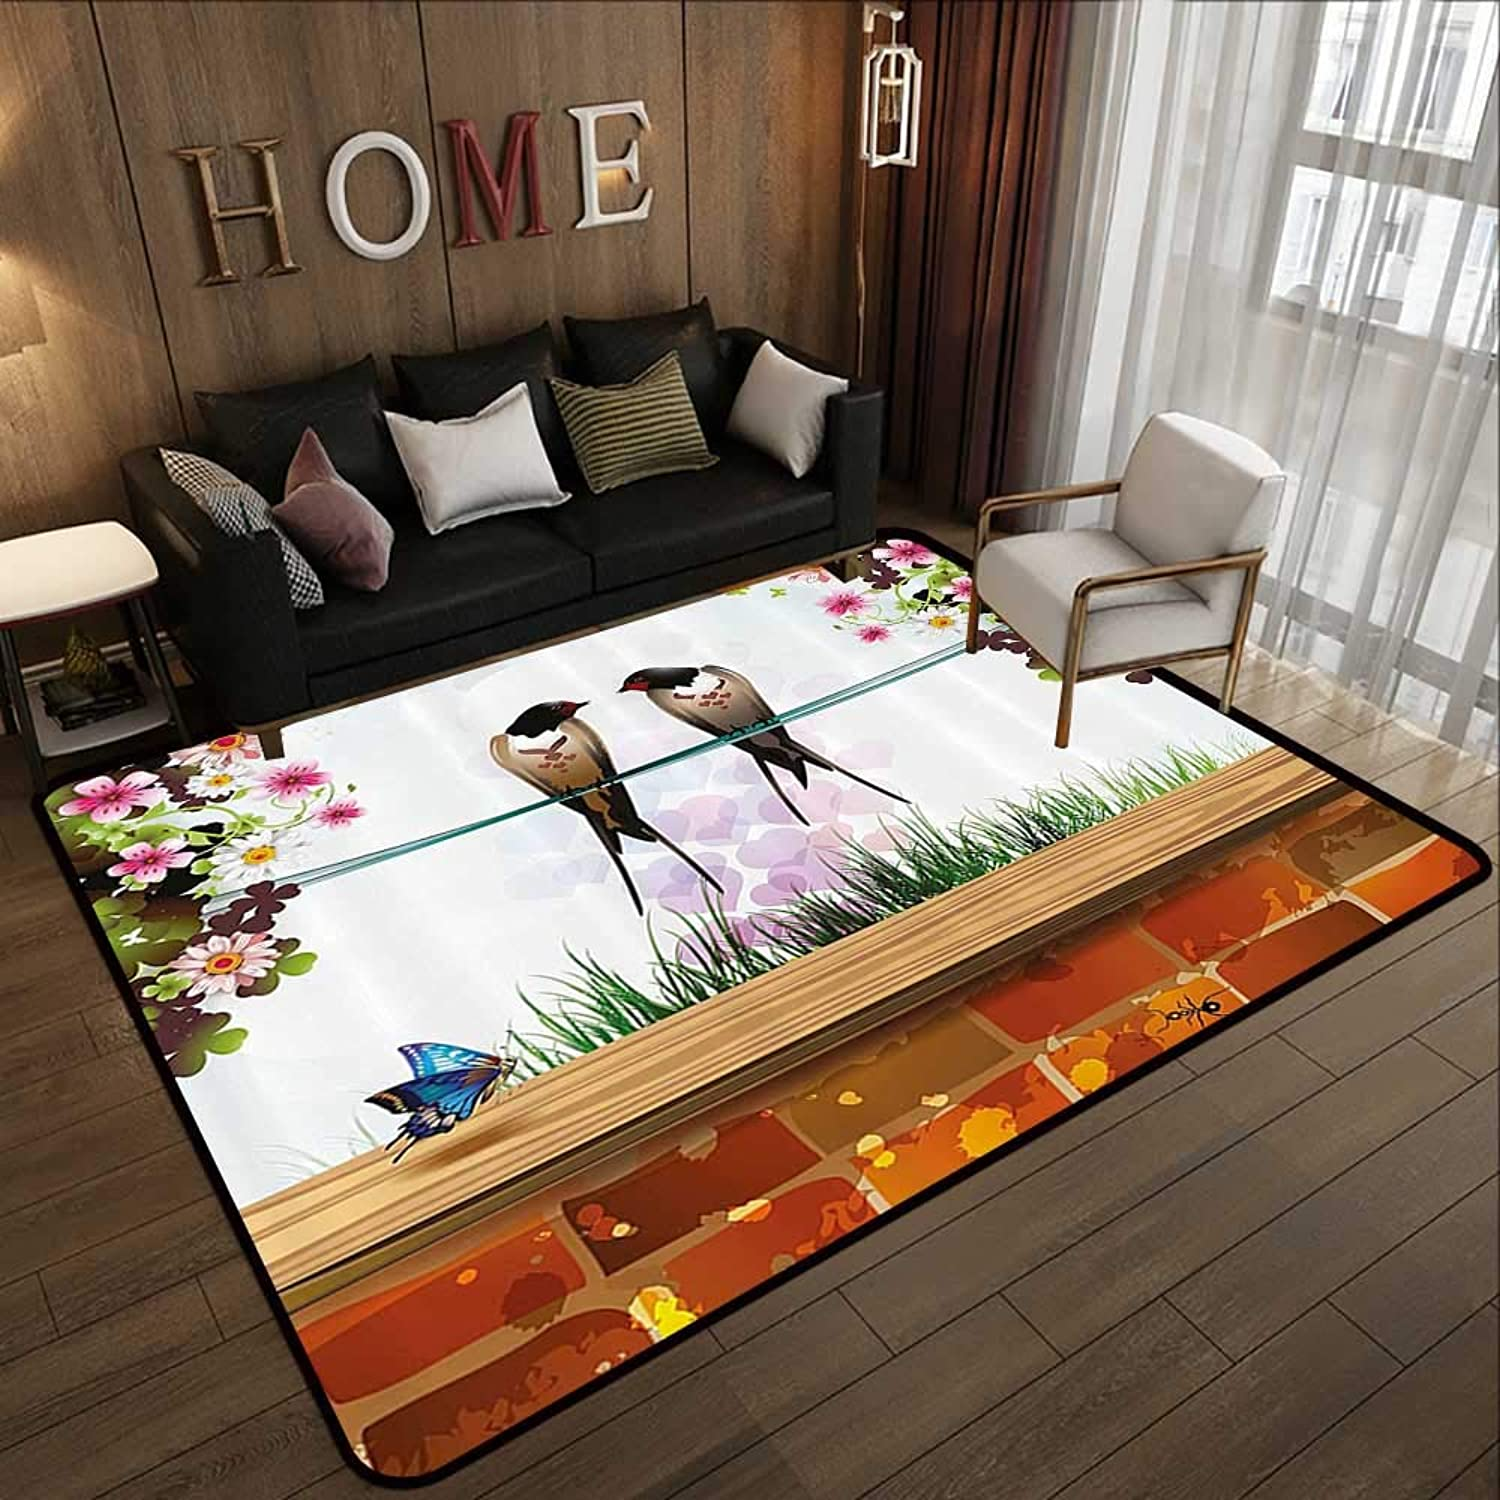 Large Area Rugs,Nature,Garden with Brick Wall Two Cute Swallows Butterfly Blooming Spring Flowers Clear Sky,Multicolor 47 x 59  Polyester Rubber Door Mats